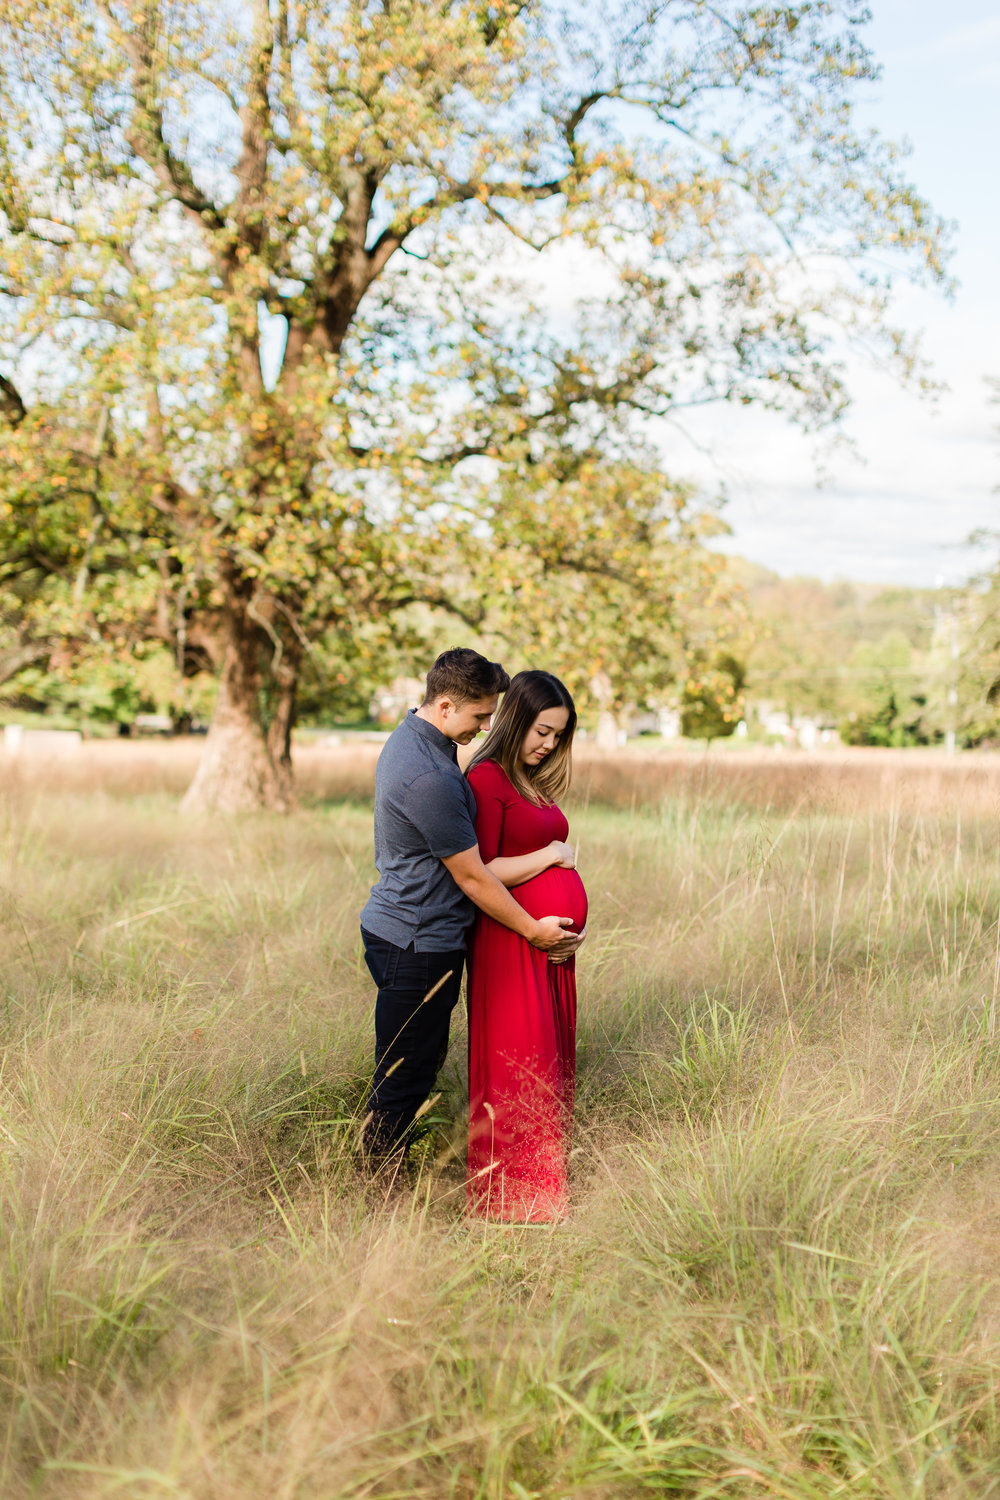 Powis_maternity_session_fall_-2920.jpg